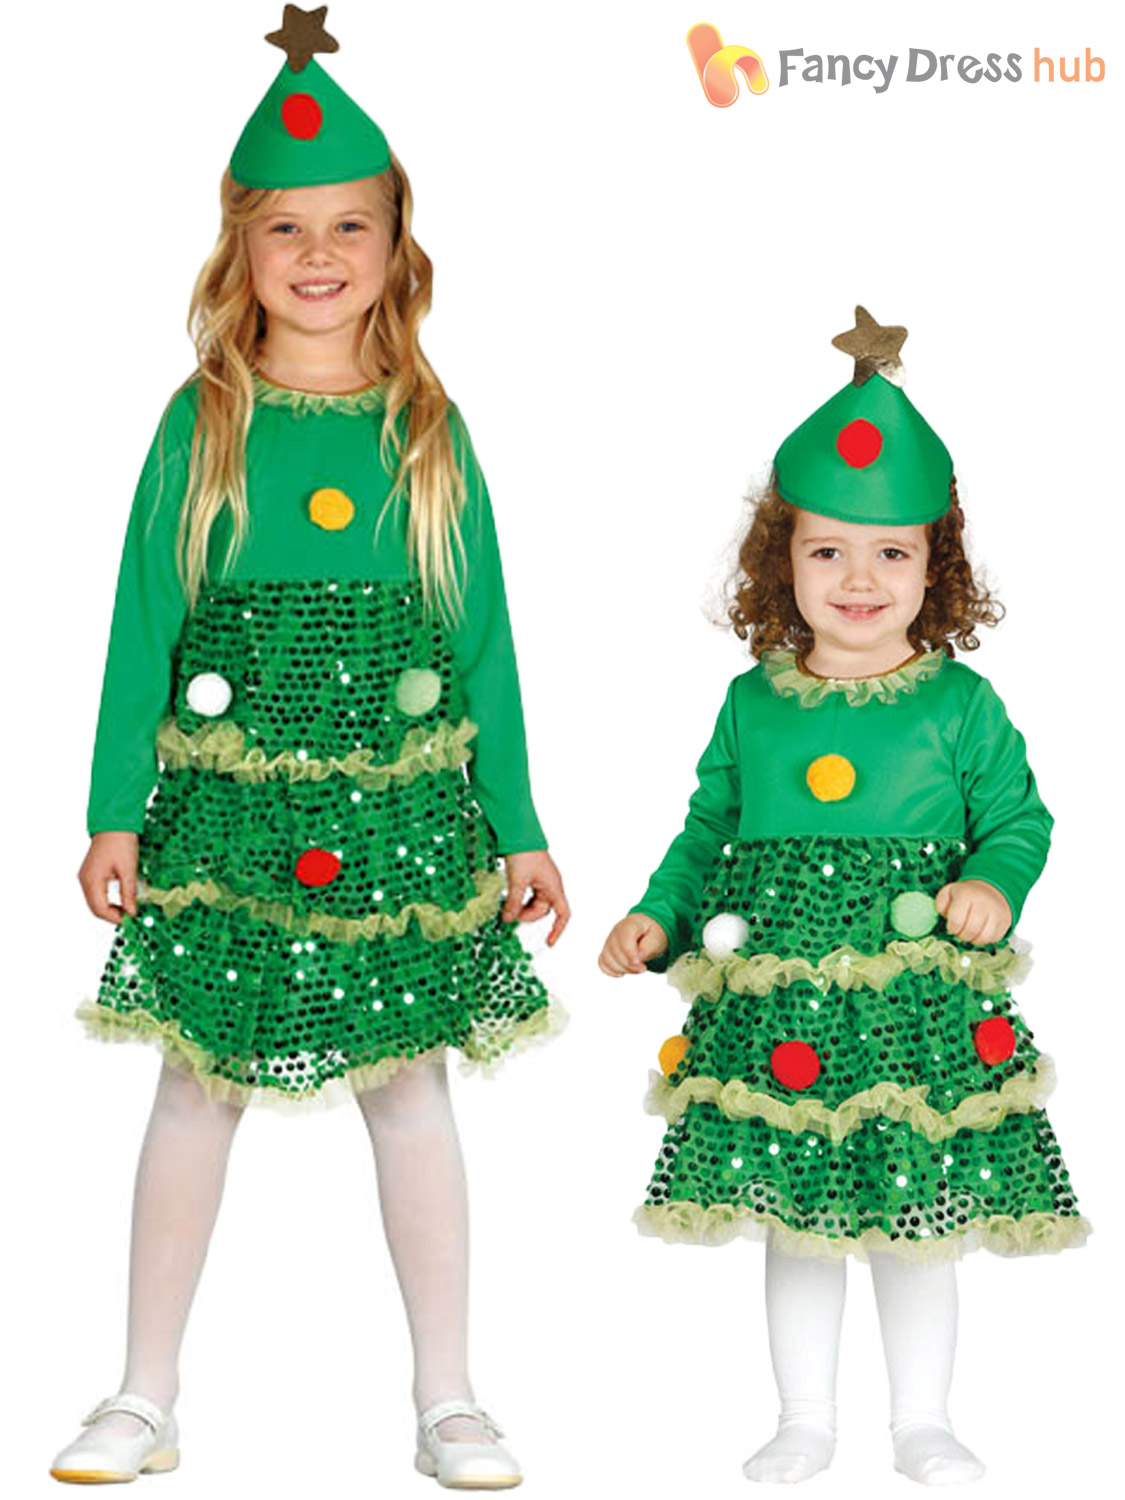 Christmas tree dress up images - The Incredible Christmas Tree Dress Up With Regard To Cur